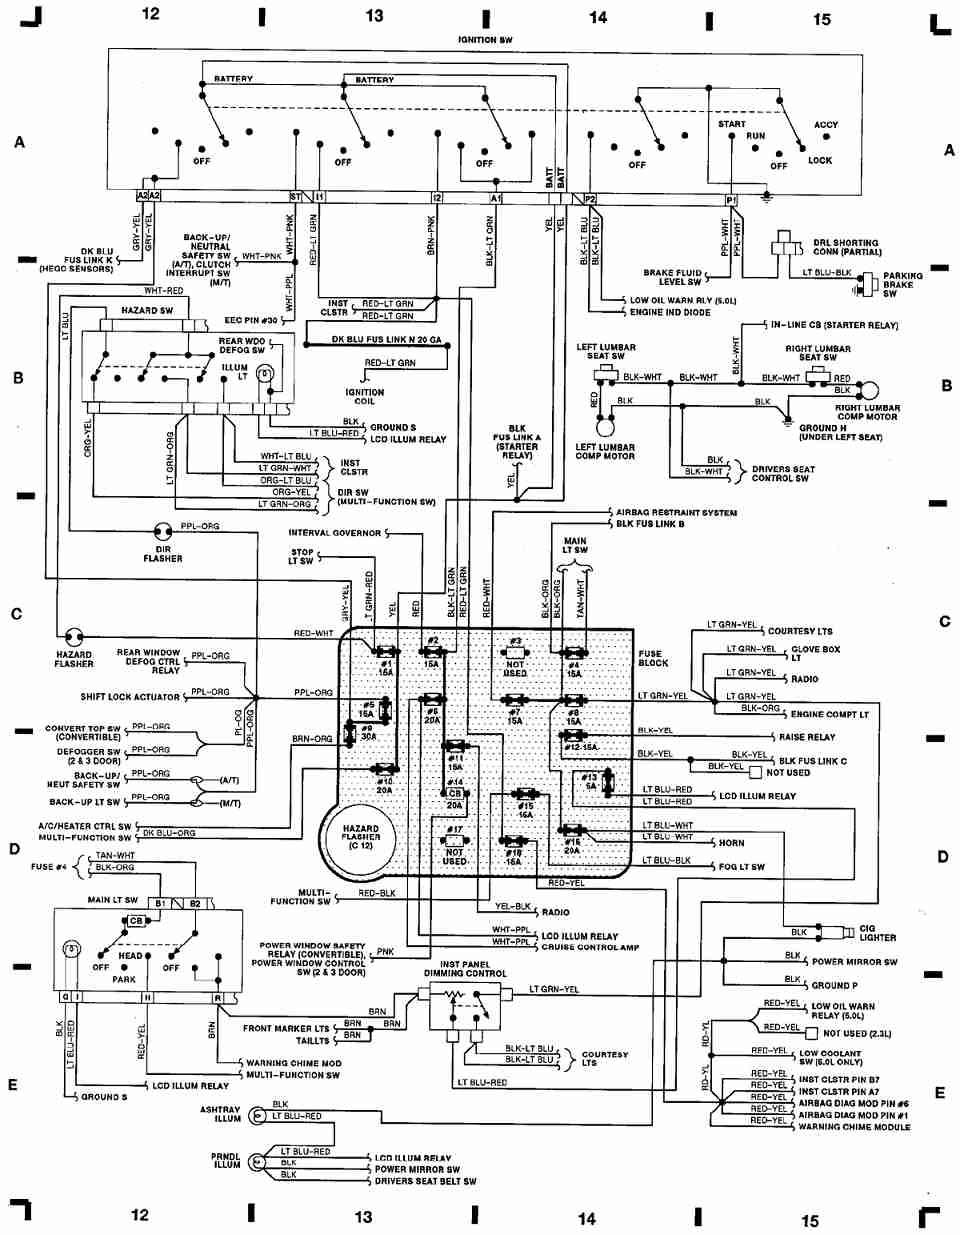 medium resolution of wiring diagram for 1993 mustang gt wiring diagram portal 87 mustang wiring diagram 90 mustang wiring diagram